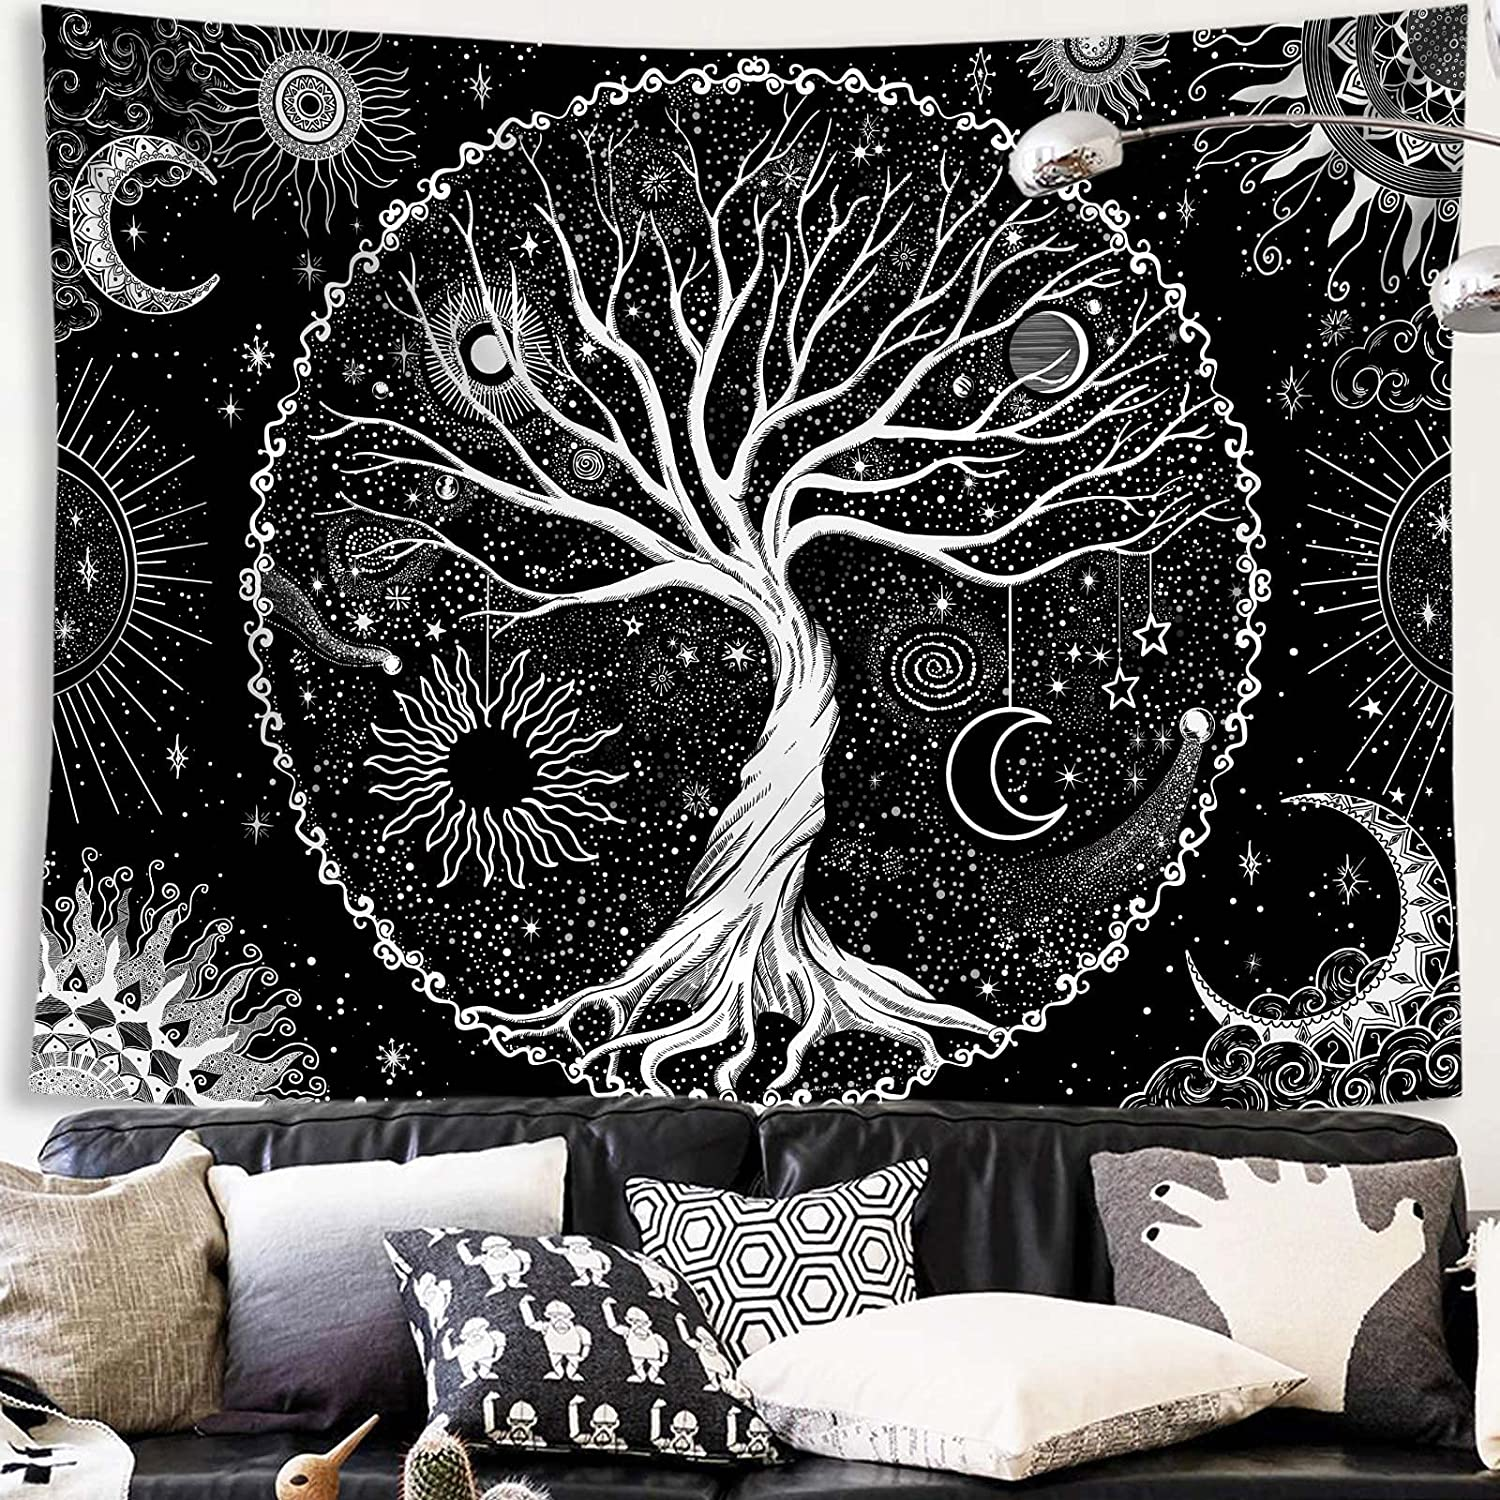 Spenlife Tree of Life Tapestry Black and White starry Tapestry Aesthetic Wall Hanging Tapestries Home Decor for Bedroom, Living Room, Dorm (60×80 Inches)